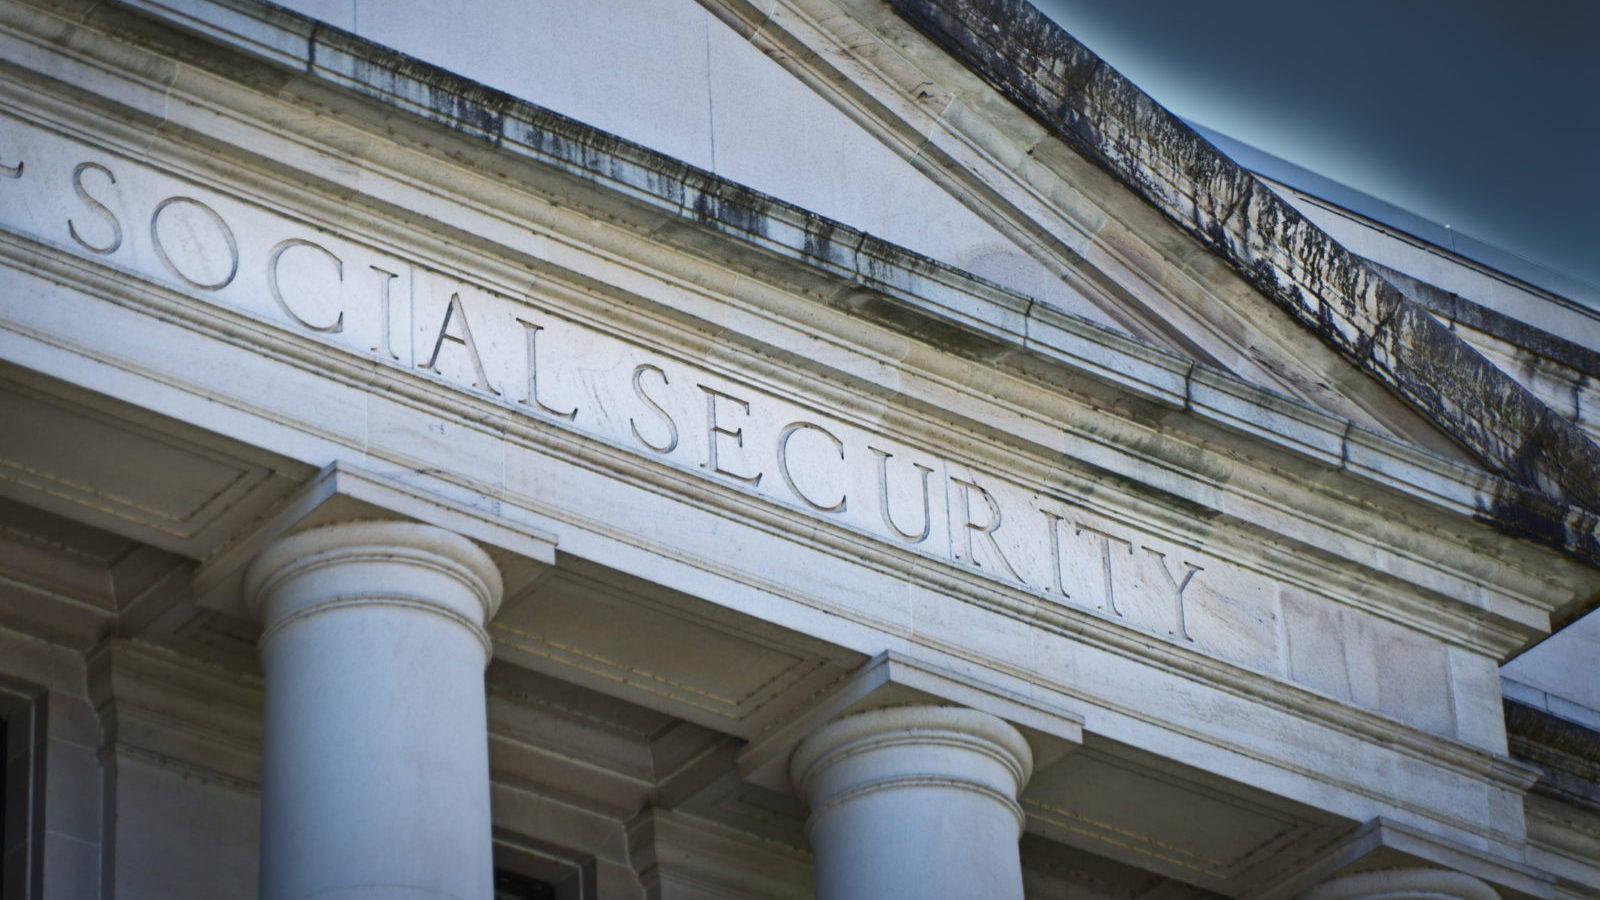 Social Security Agency Government Building Sign